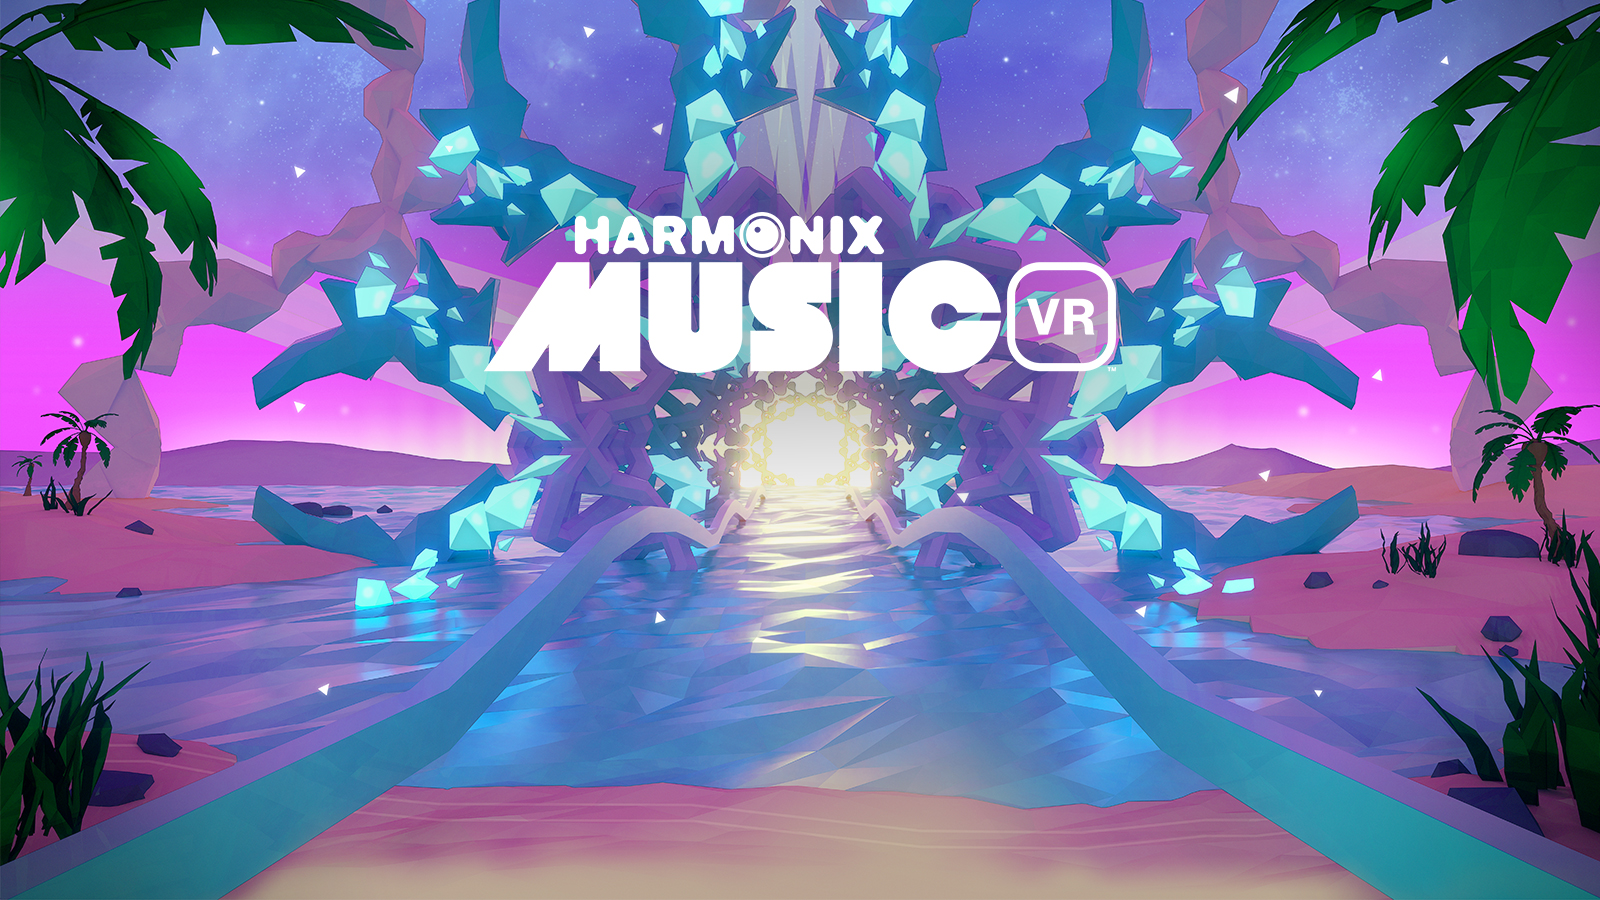 Harmonix Music VR Game | PS4 - PlayStation